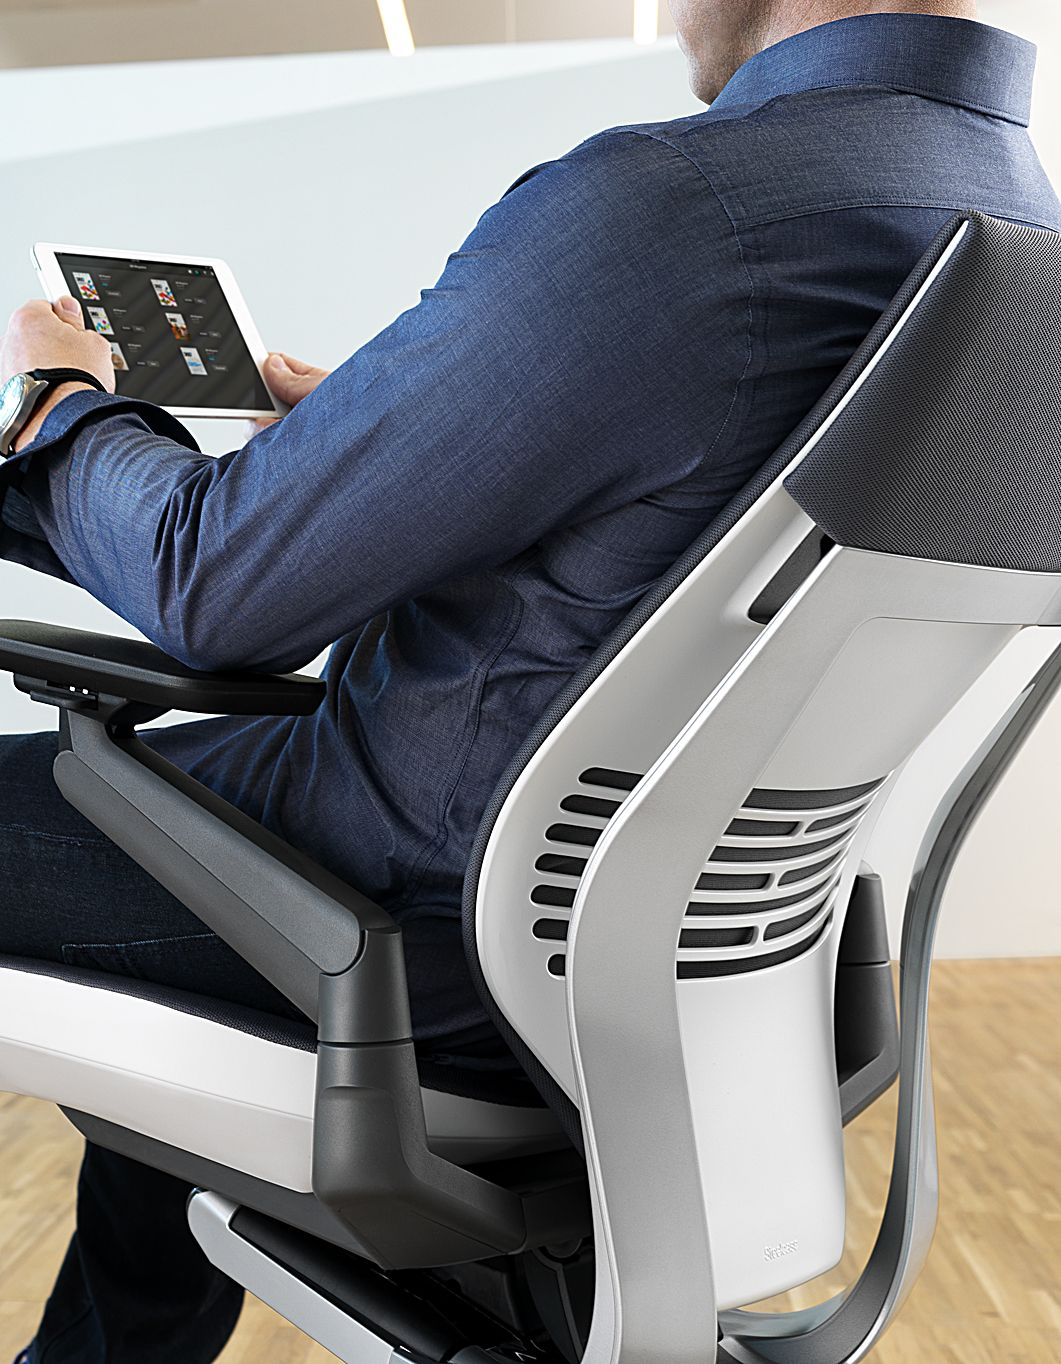 The Steelcase Gesture task chair, available in the Autumn